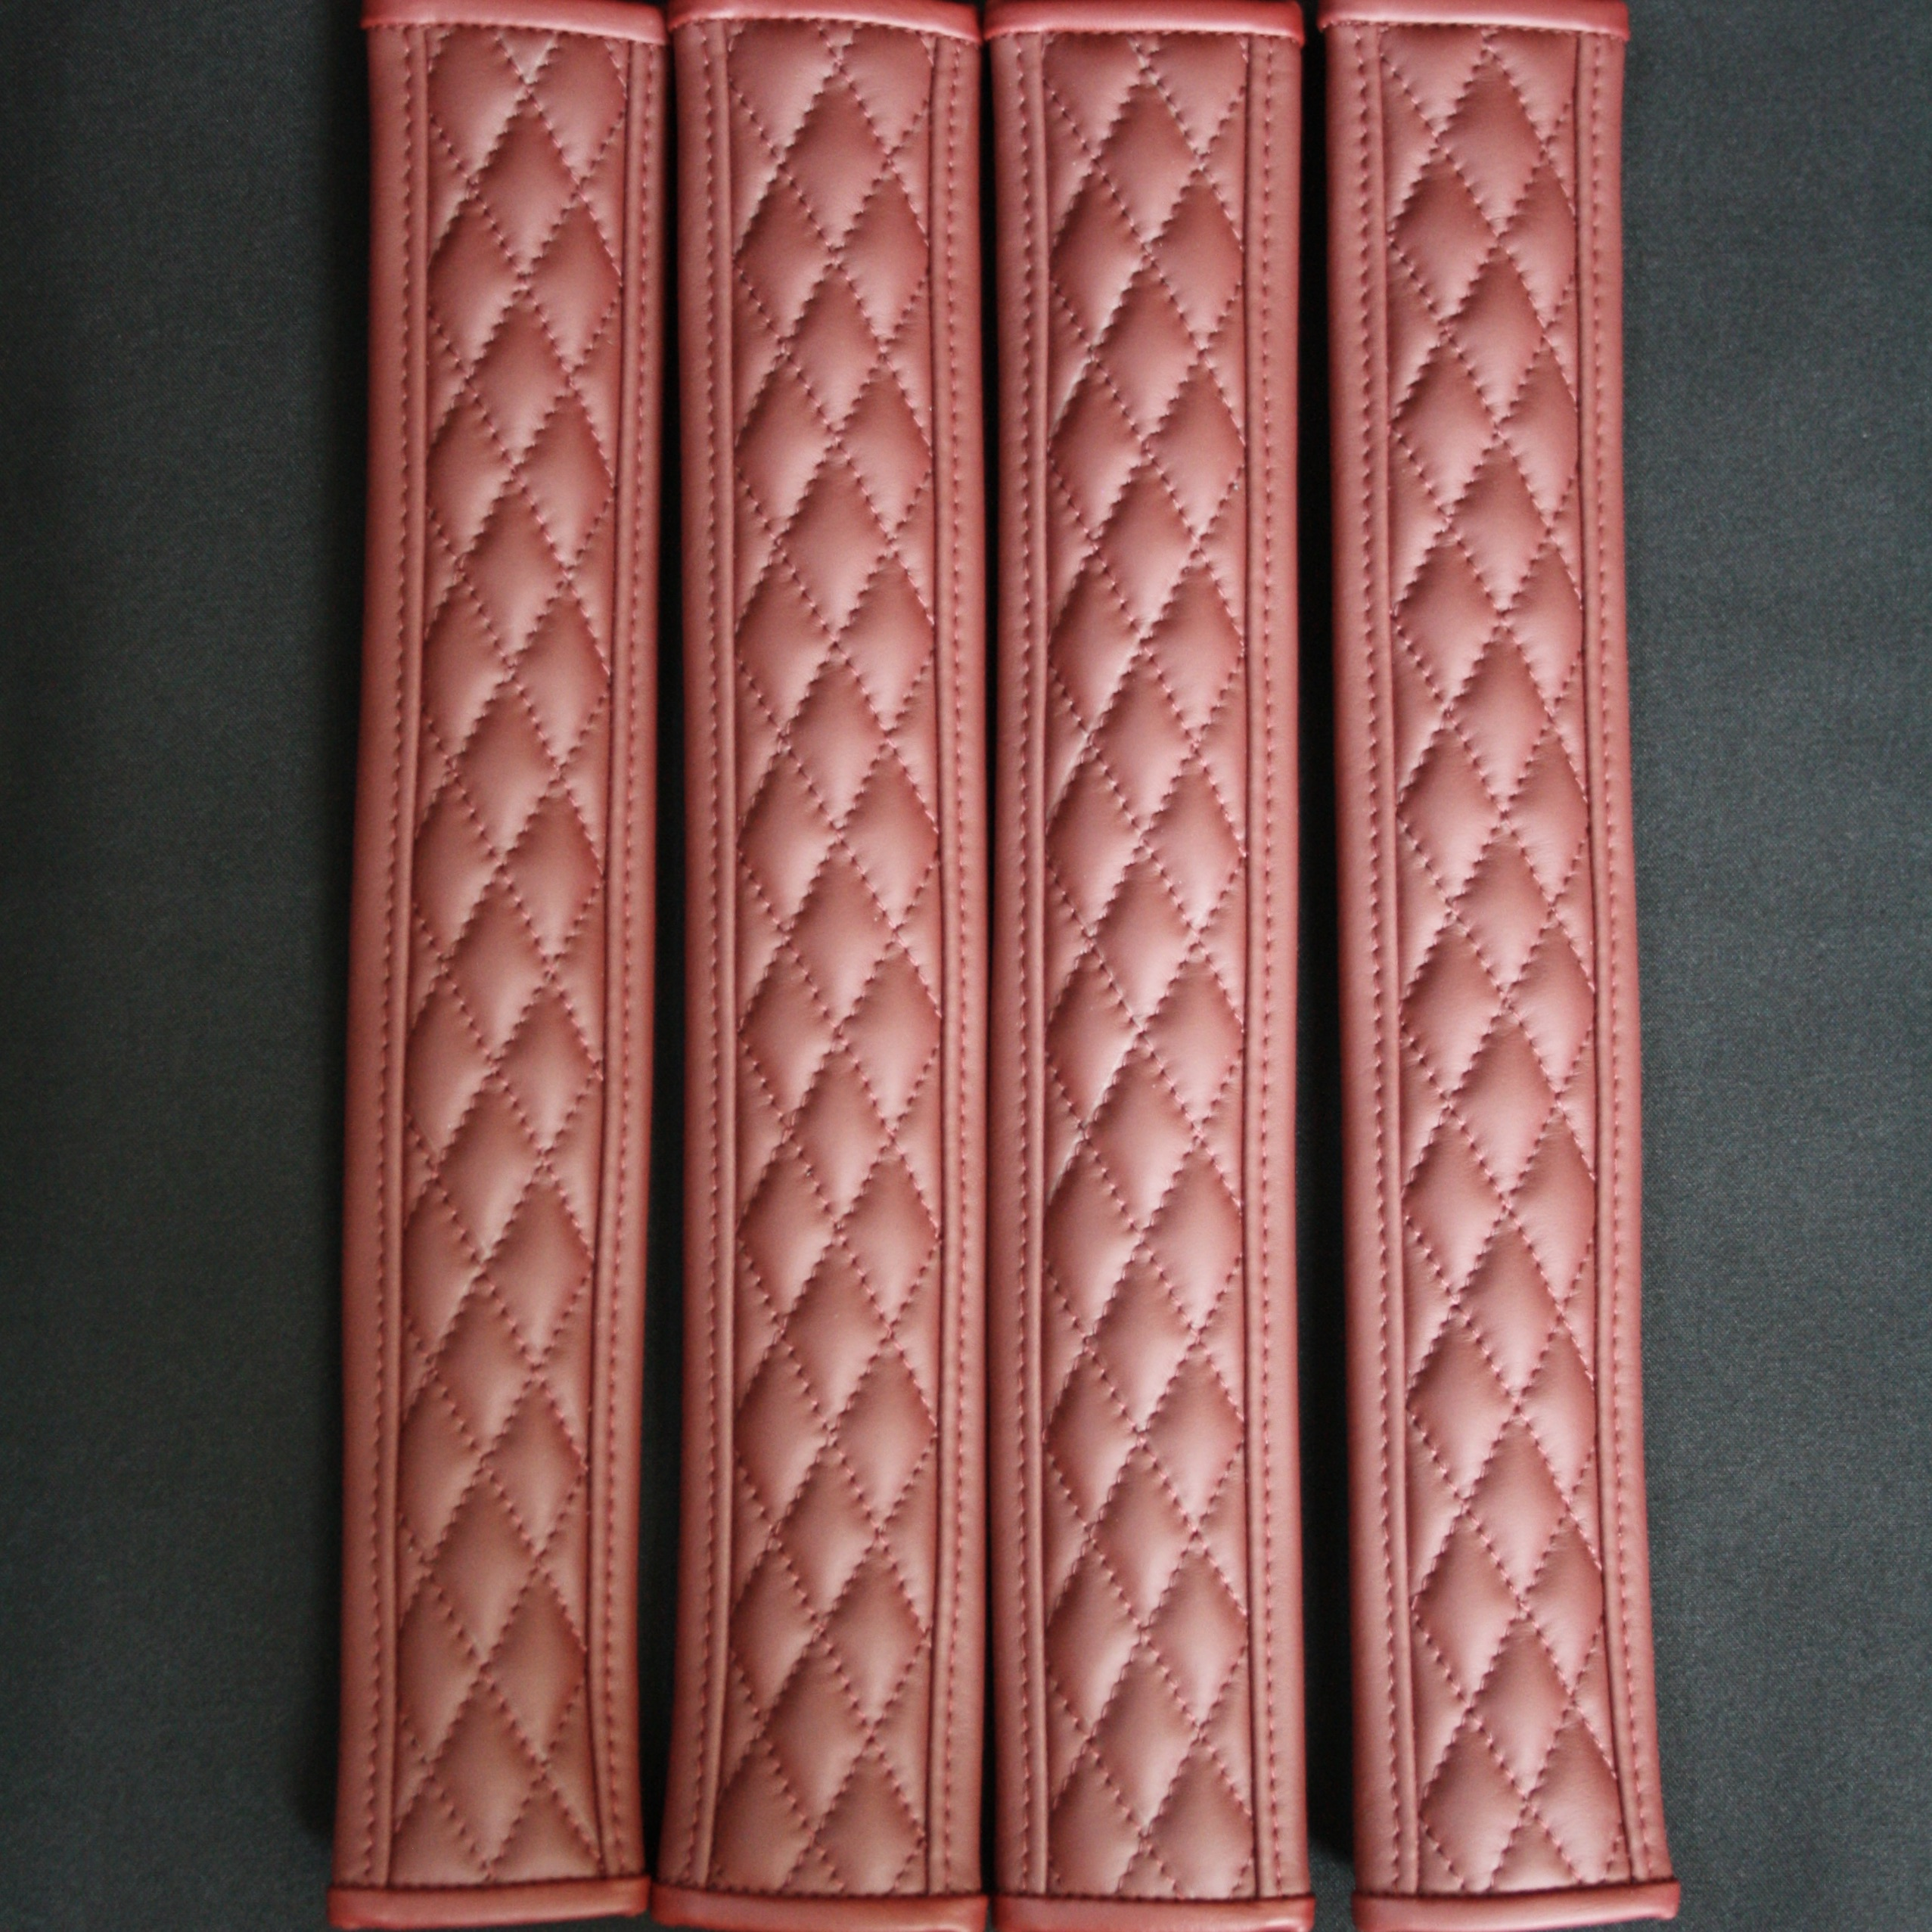 Belt</br>covers